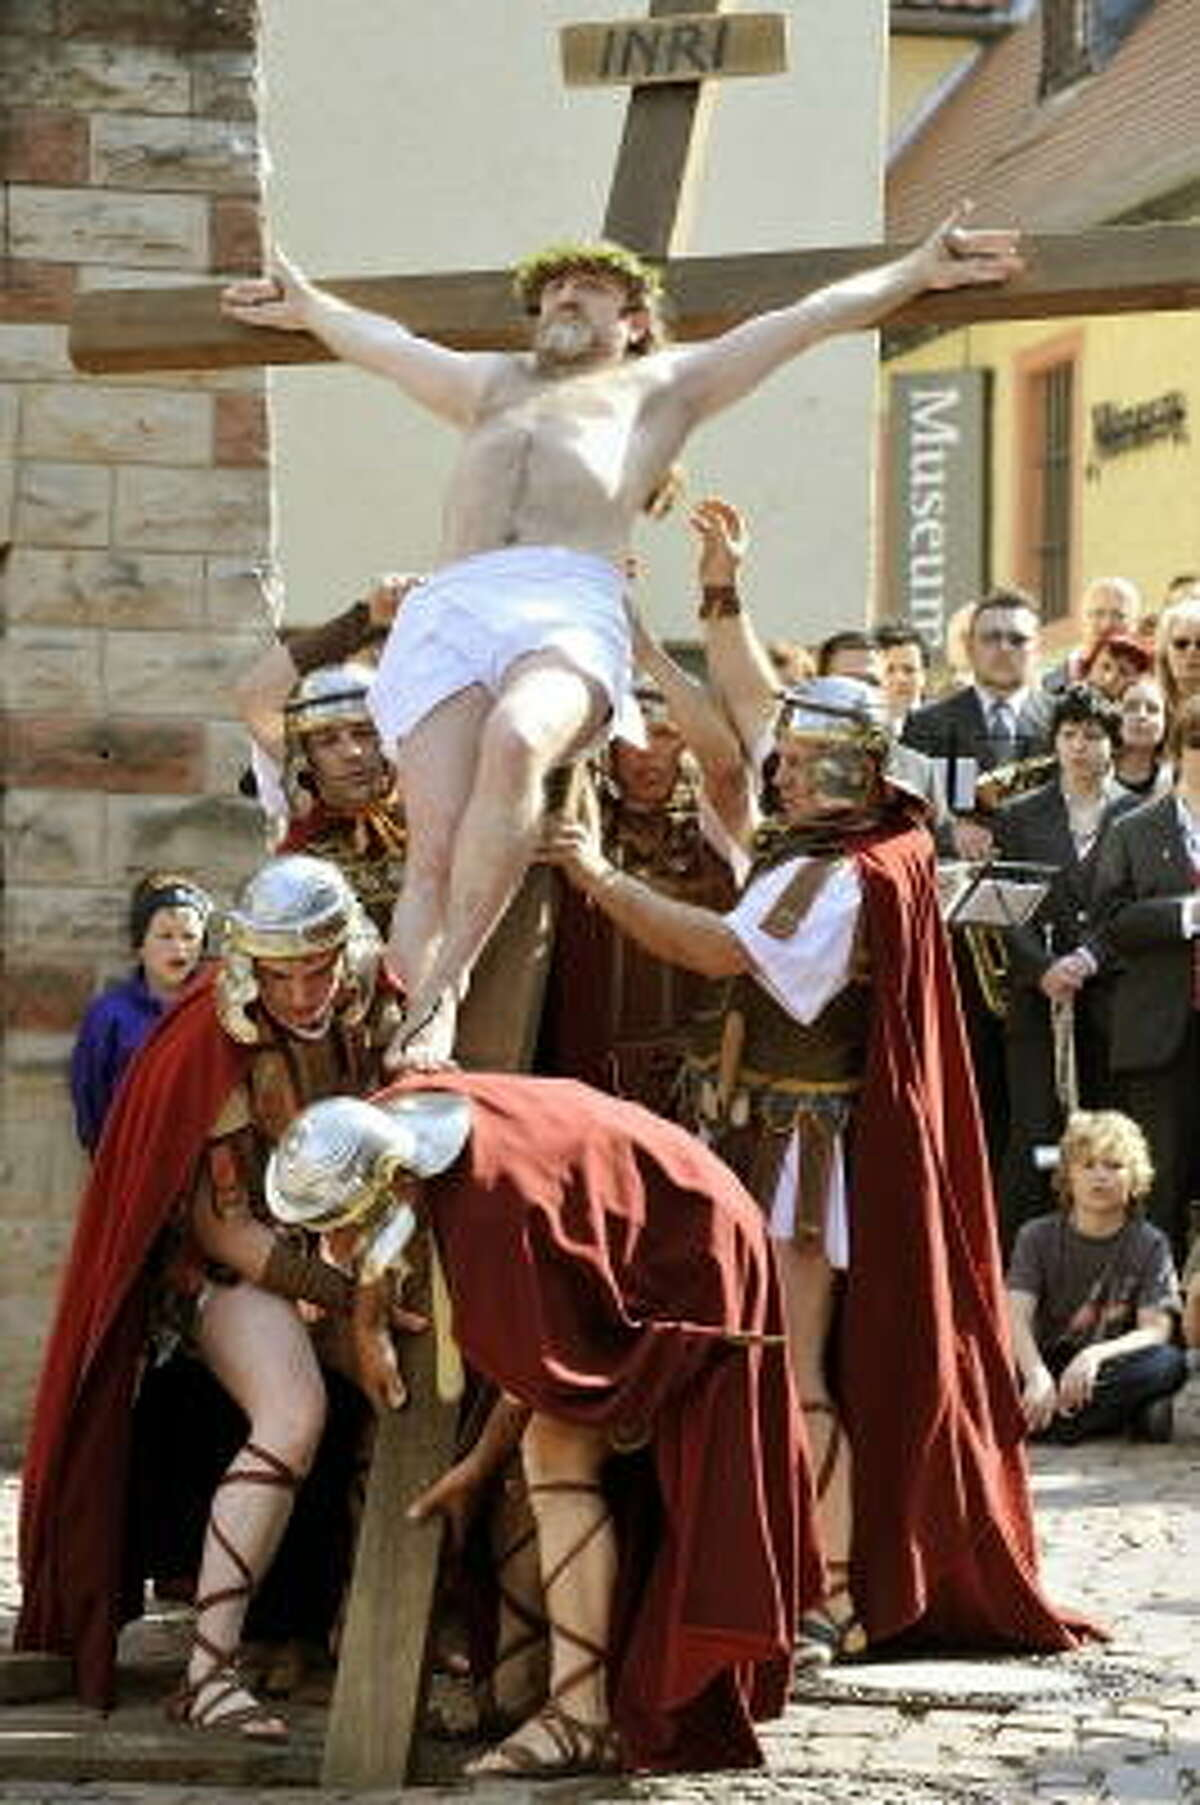 Hartmuth Lux in the role of Jesus and other lay actors perform the Stations of the Cross during the Good Friday procession on April 10, 2009 in Bensheim in western Germany. Thousands of believers flocked the roads of the village to attend the passion play.